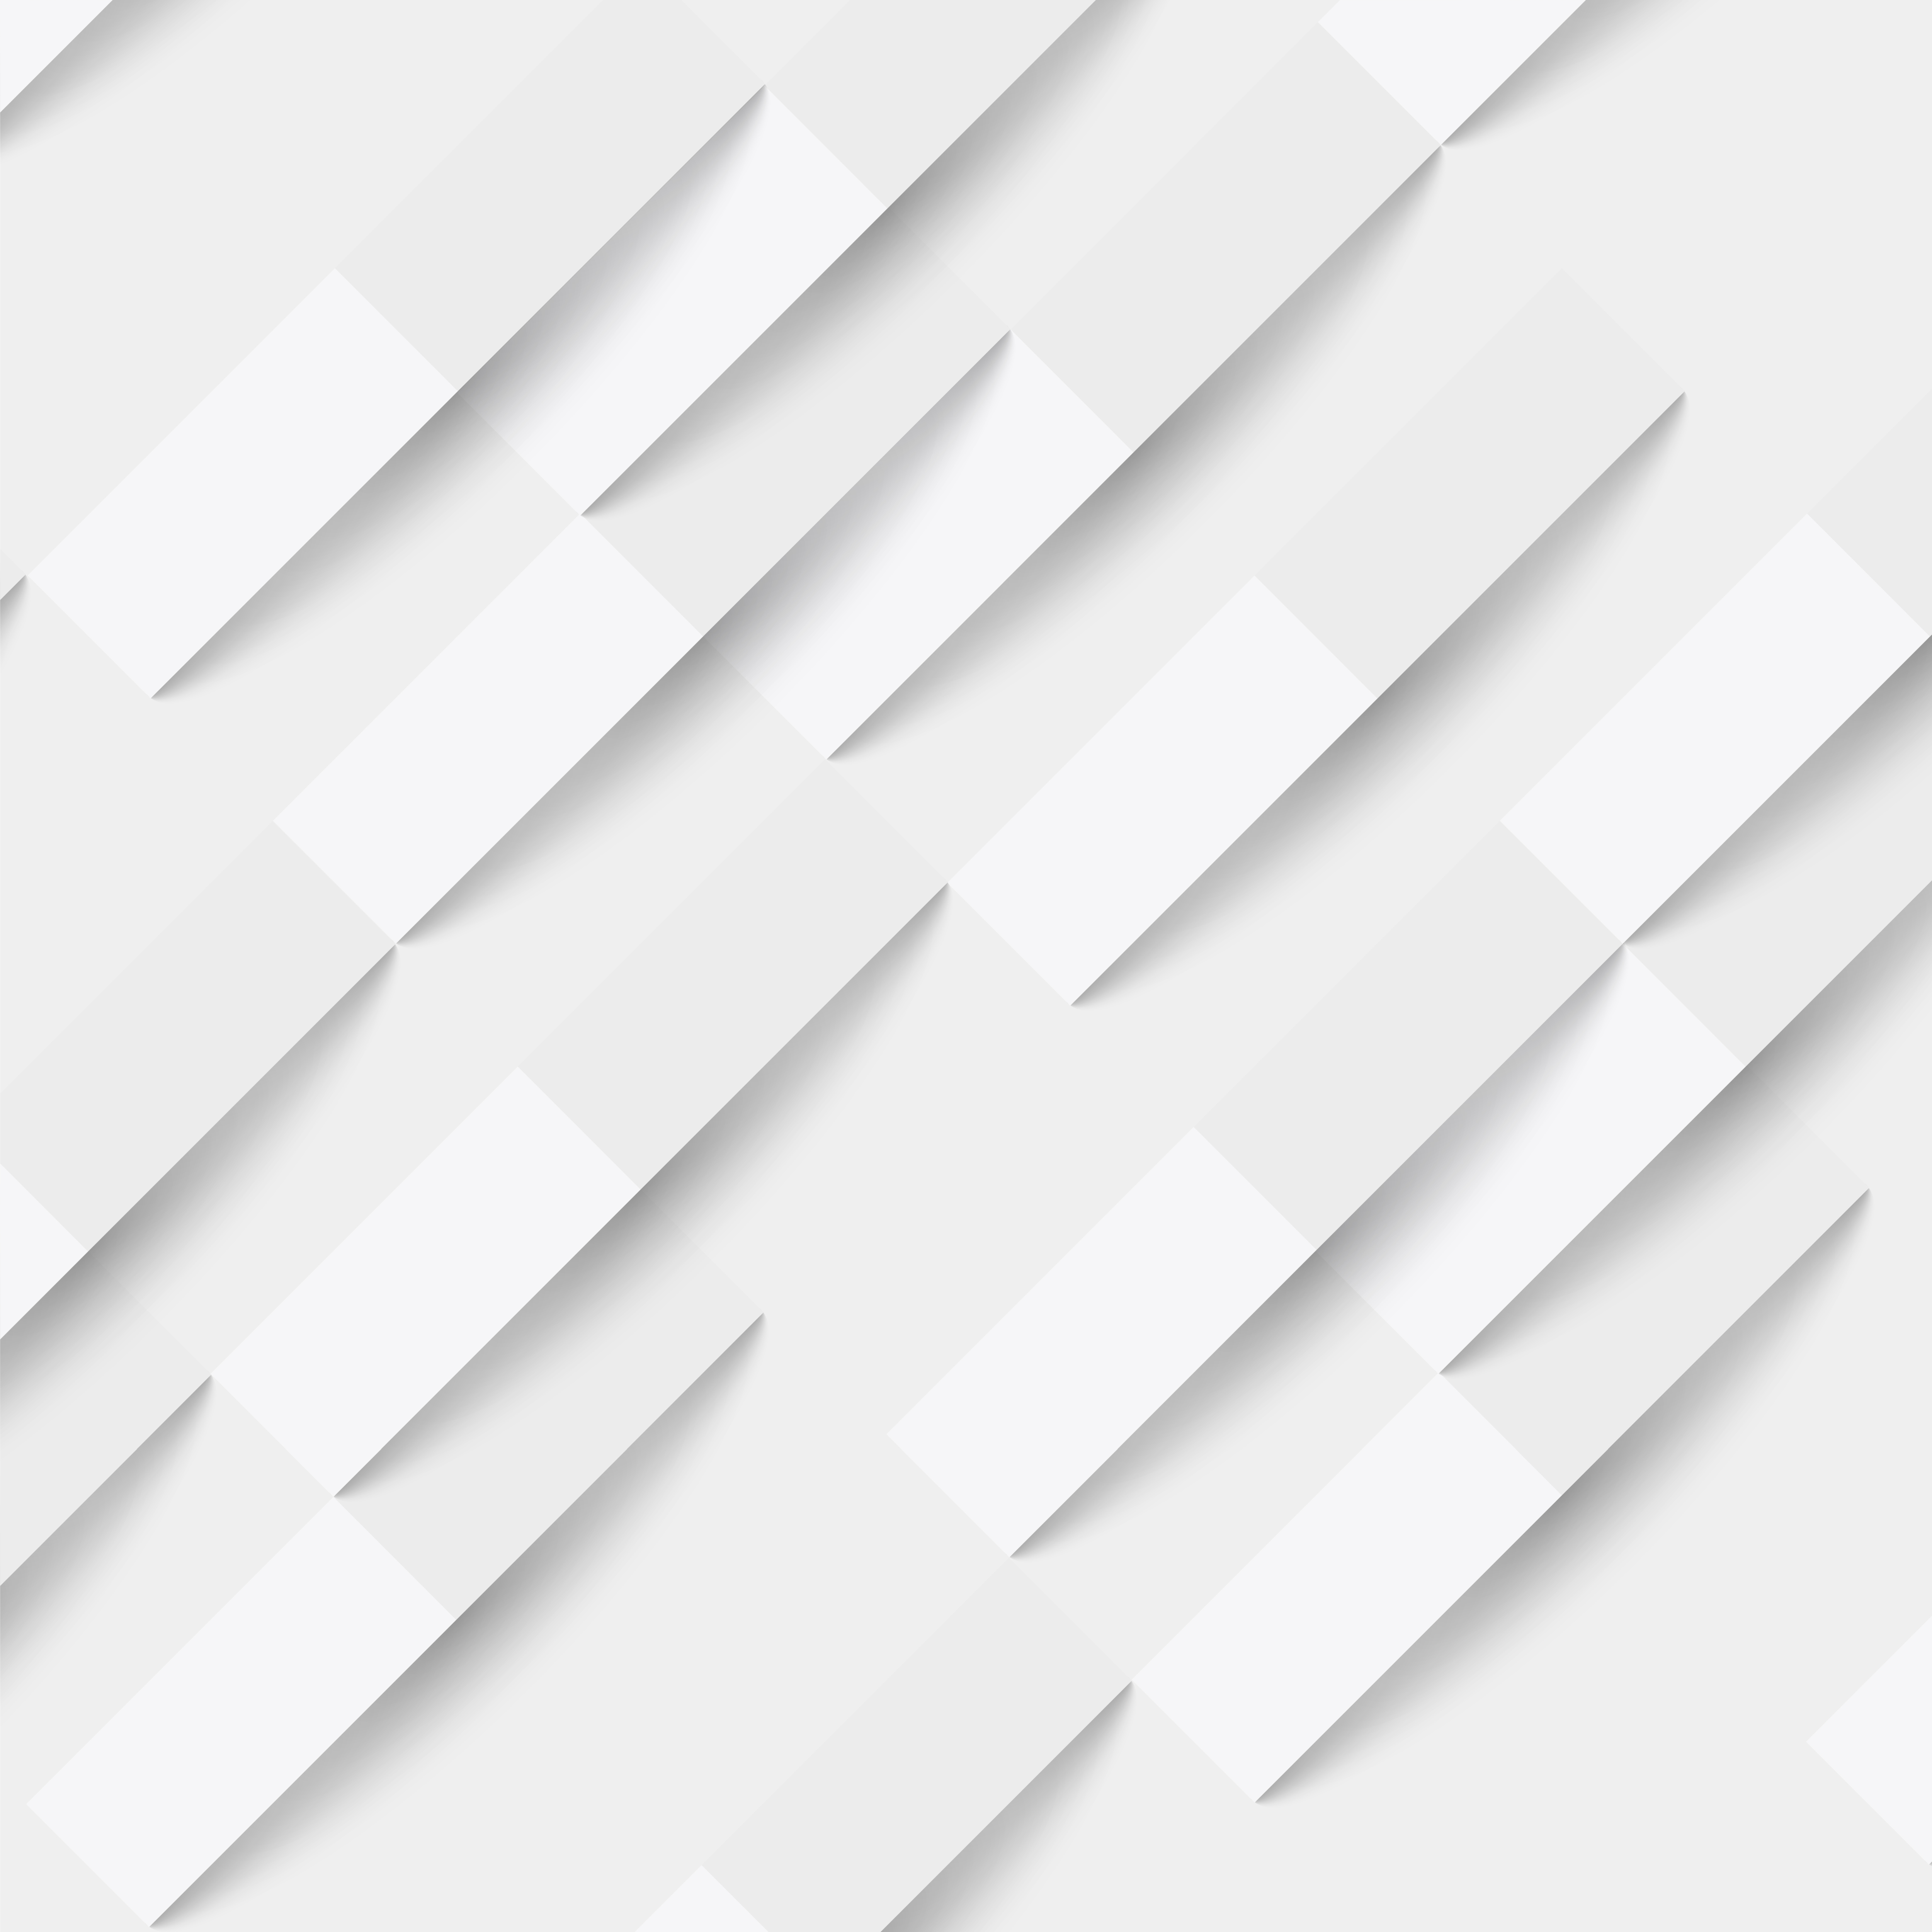 Abstract White Background With Folds And Shadows, Vector